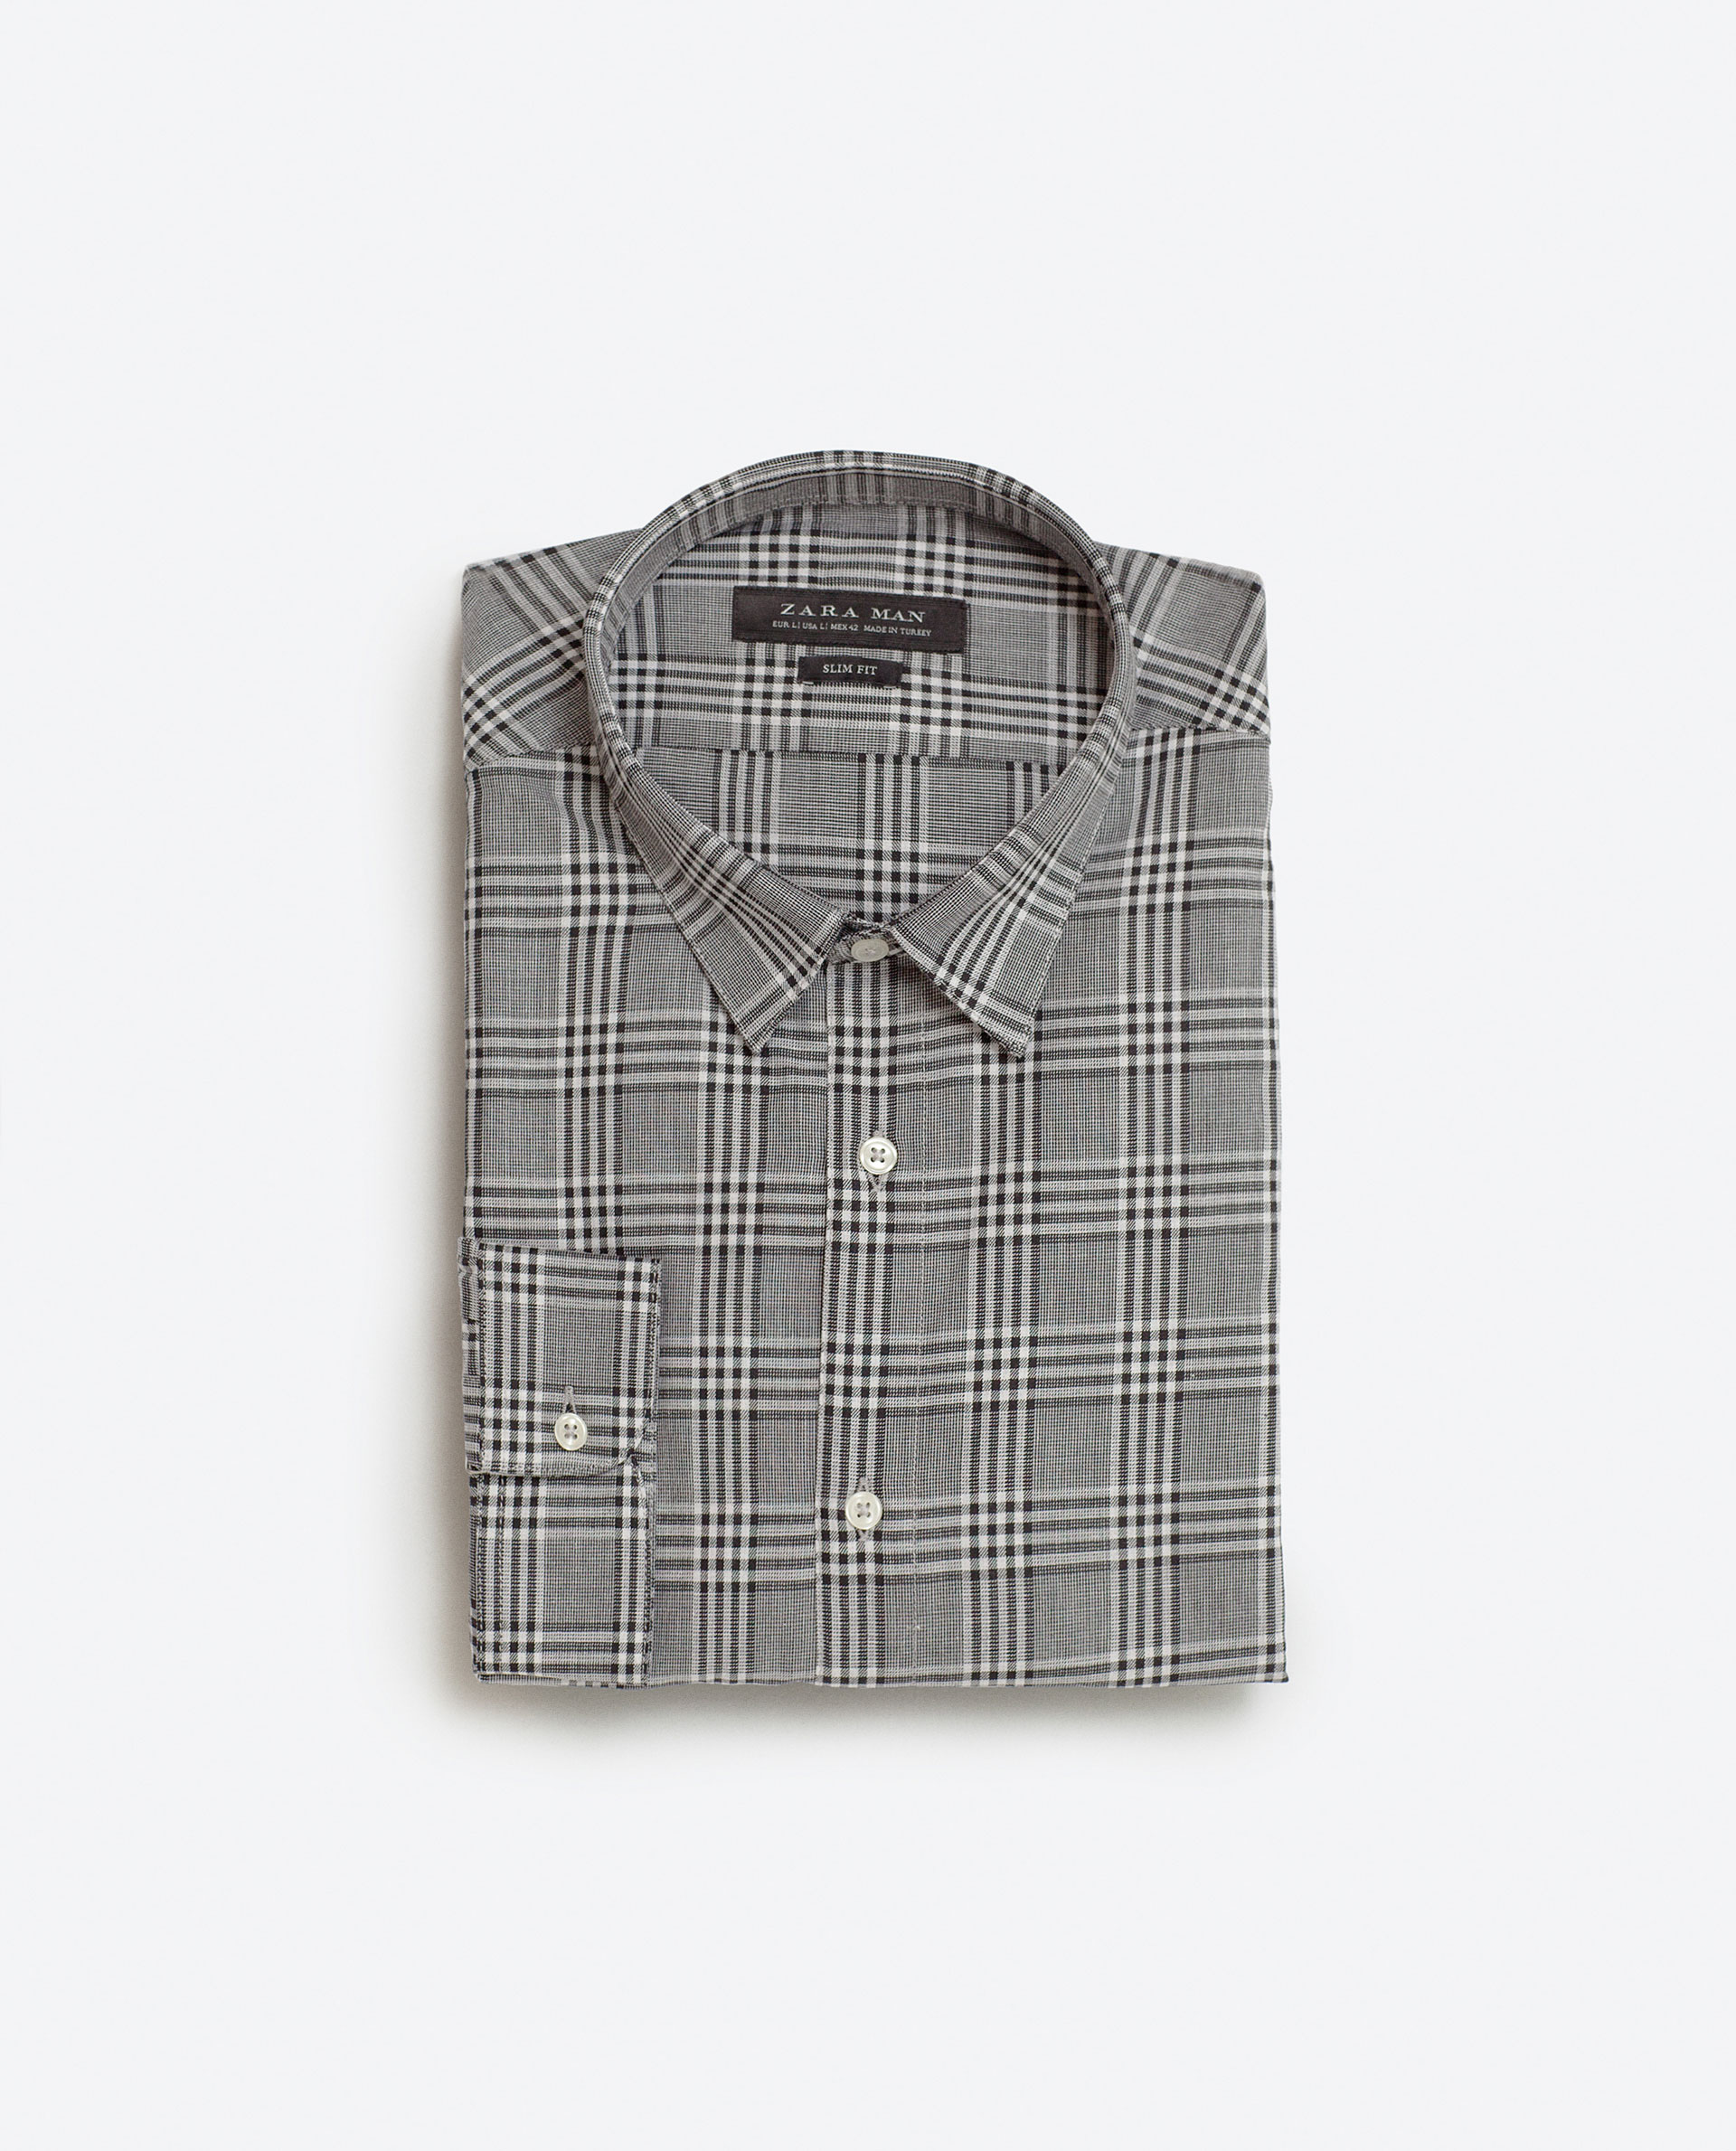 Checked mélange shirt, £25.99 ( zara.com )